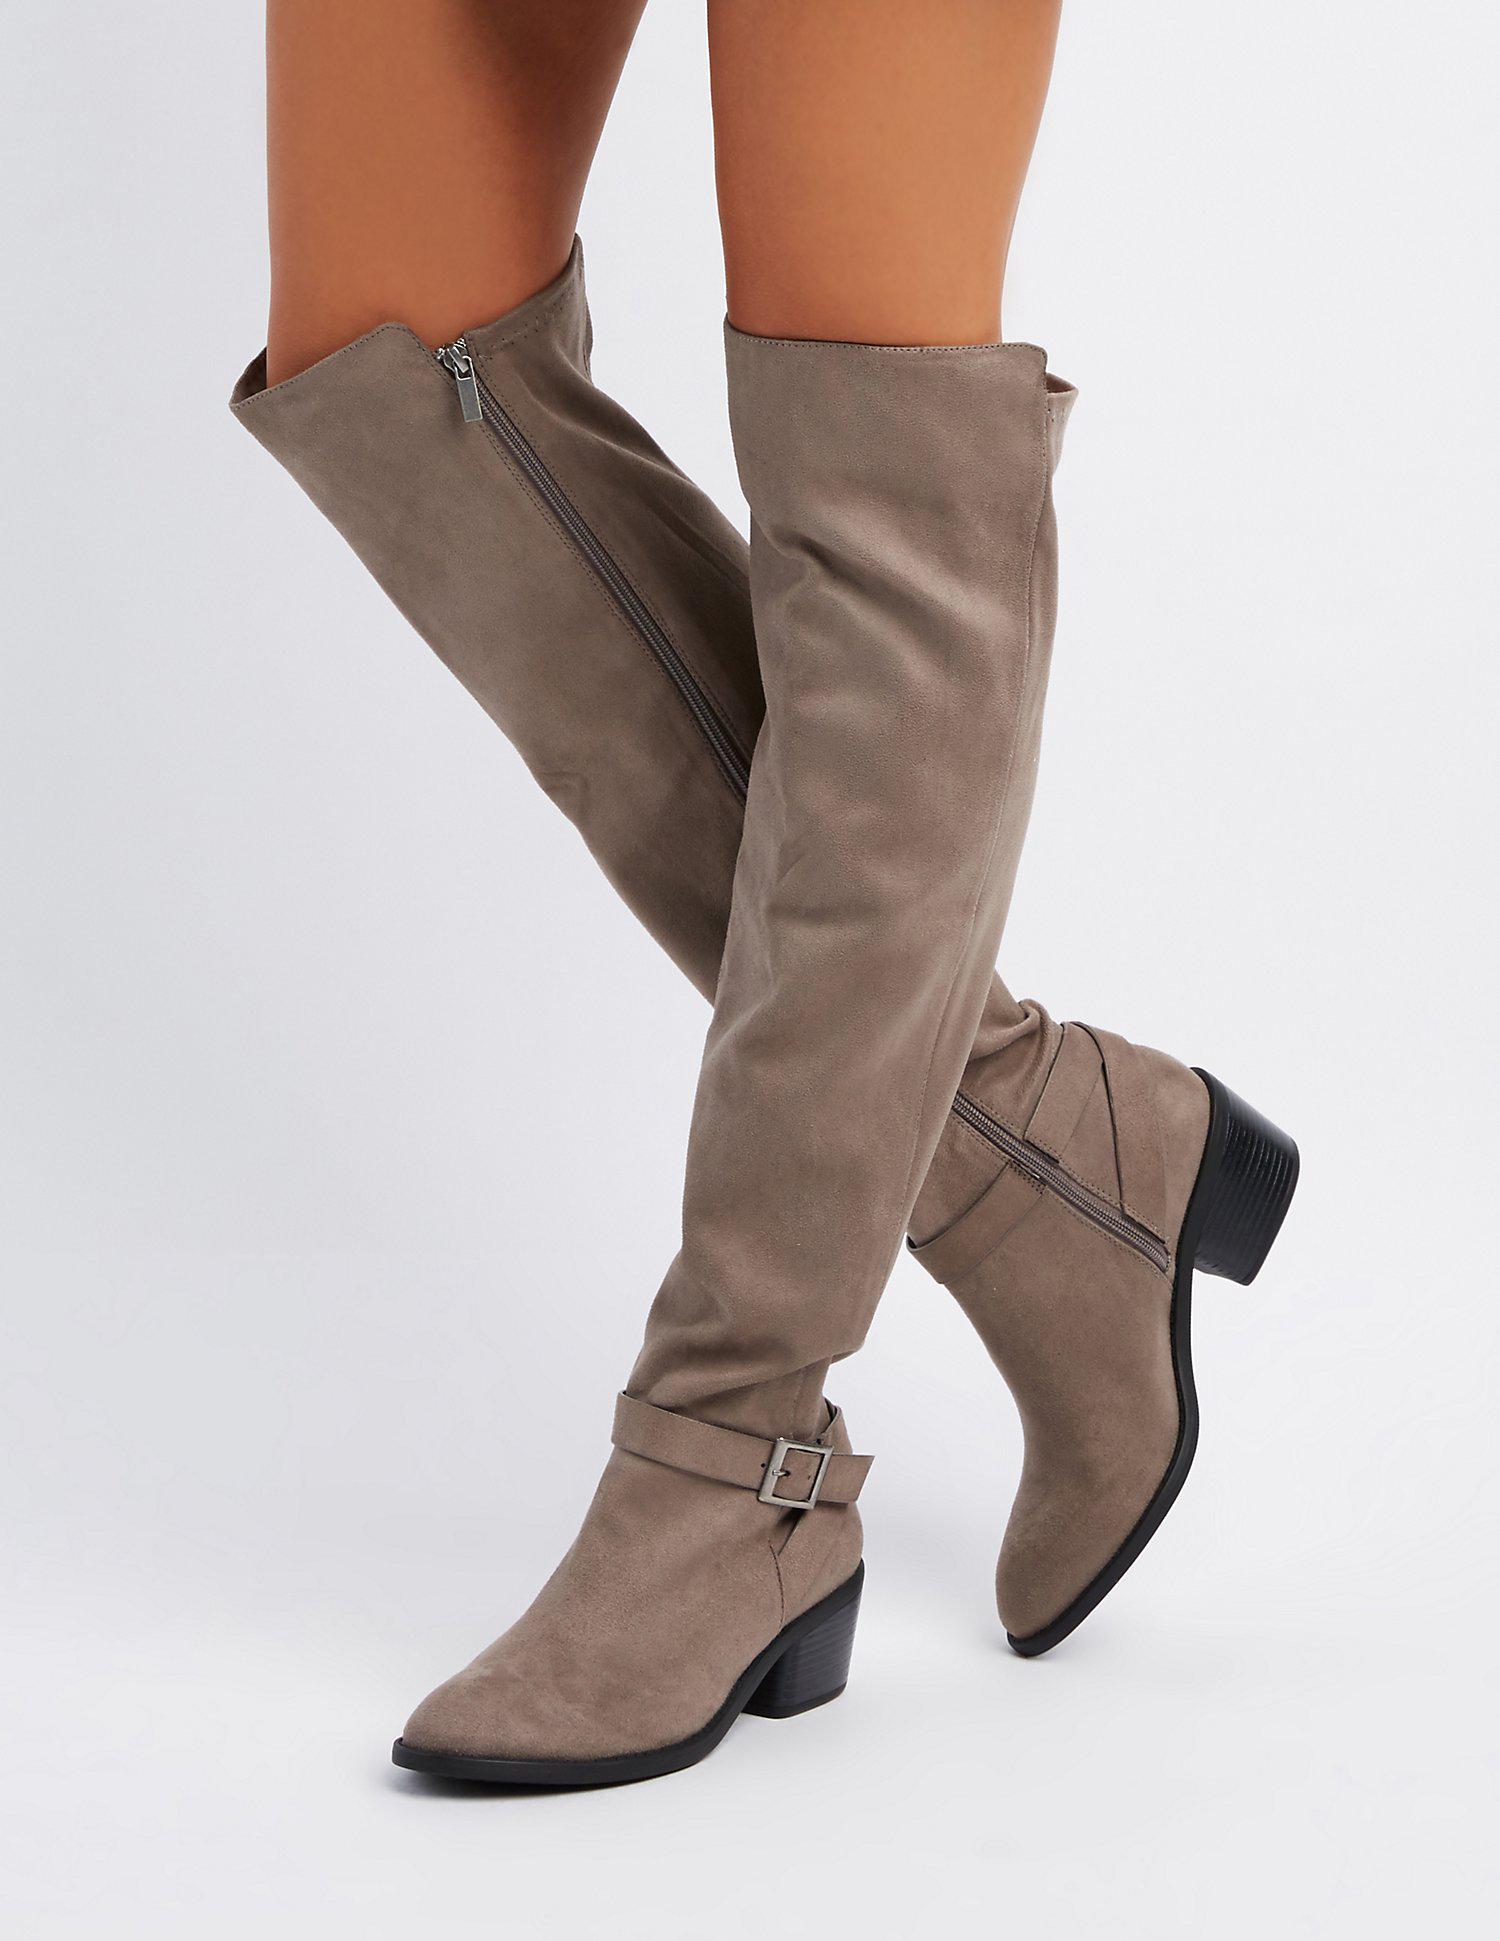 35f405cf908 Lyst - Charlotte Russe Bamboo Over-the-knee Riding Boots in Gray